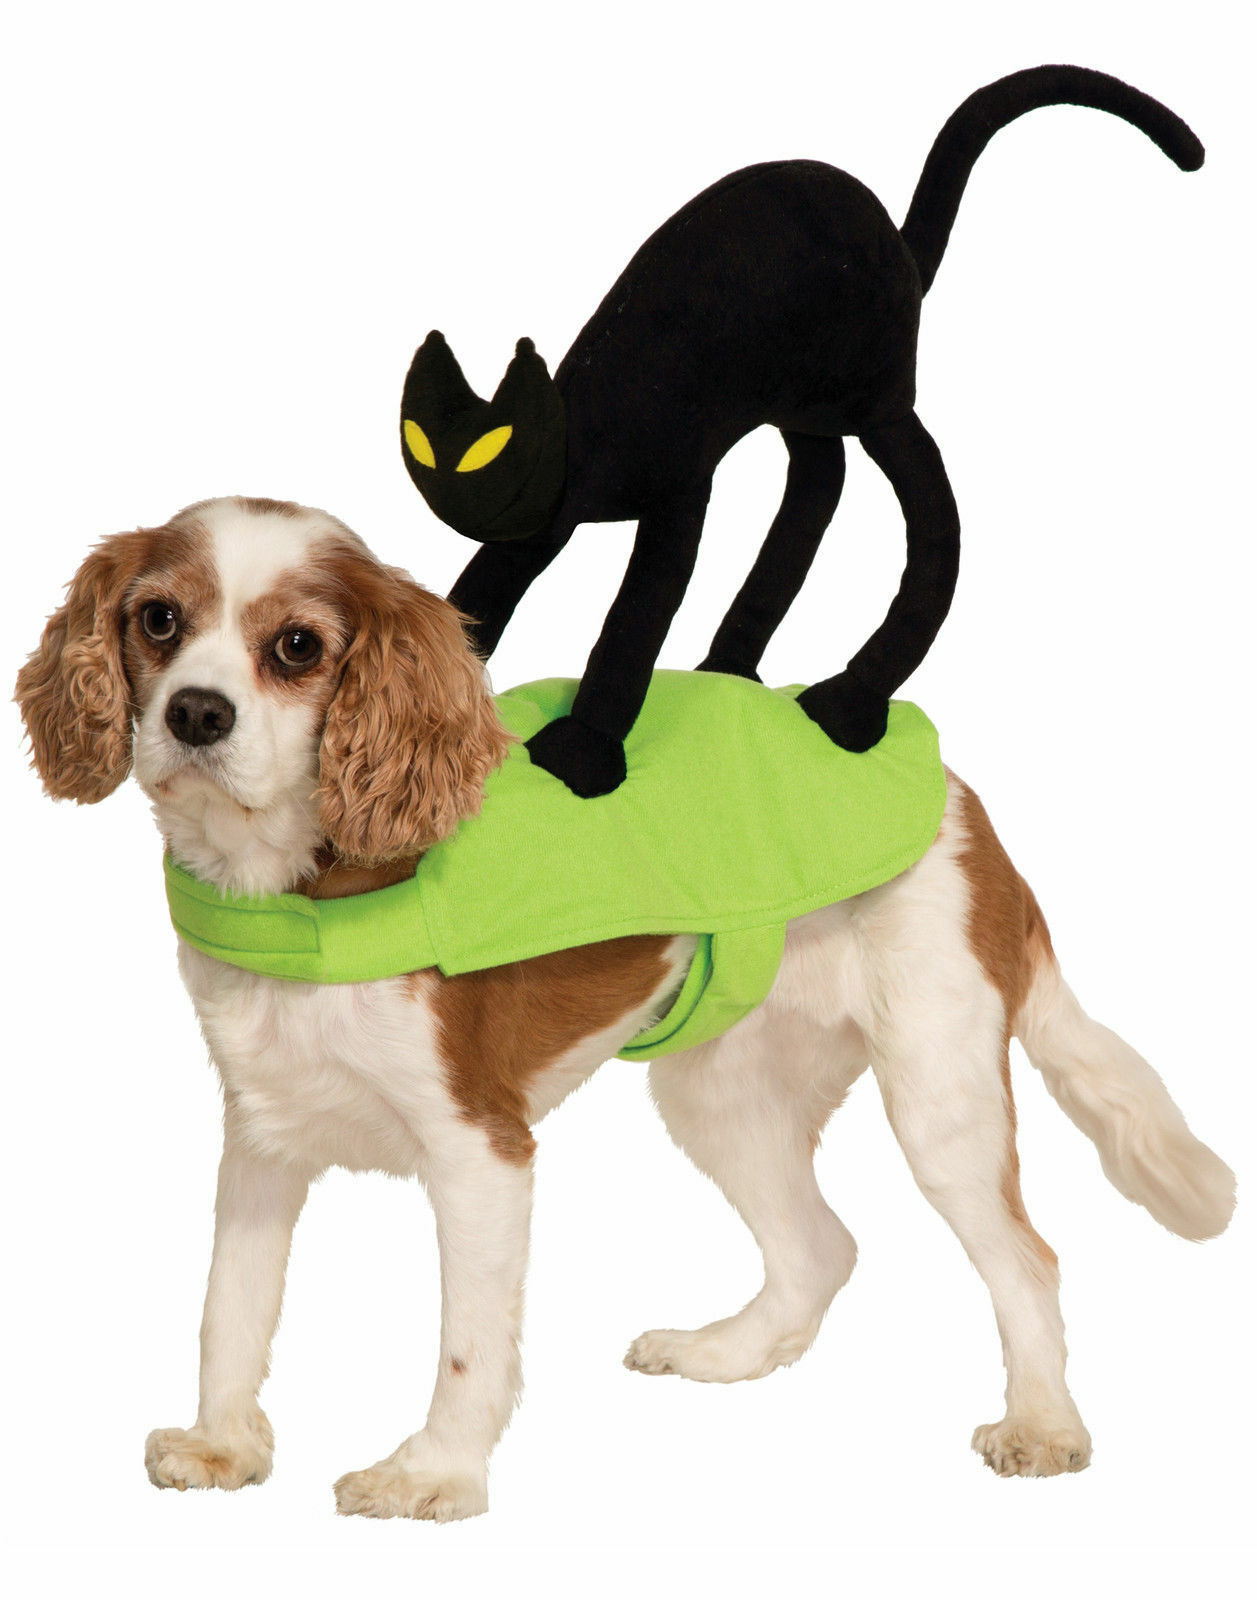 The Cutest Cat And Dog Halloween Costumes | eBay